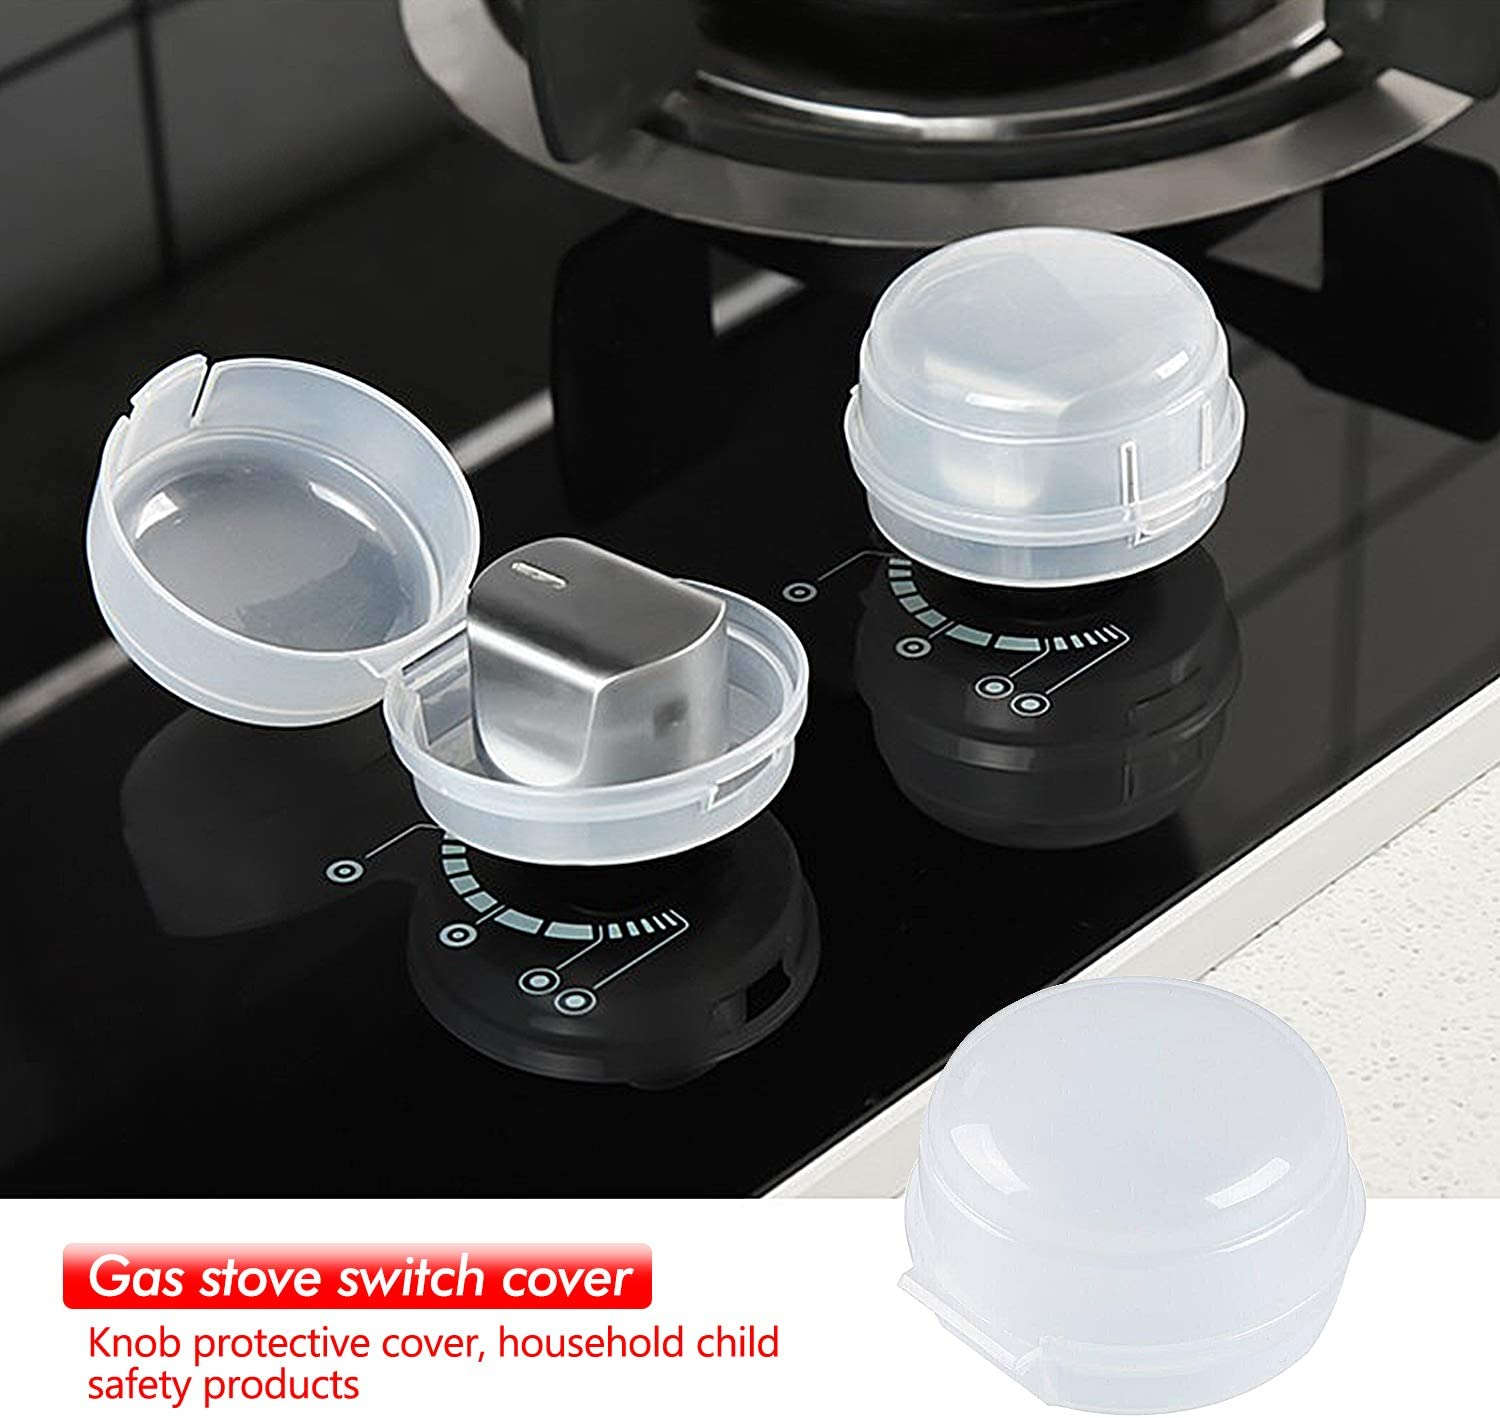 SANTOO Kitchen Gas Stove Knob Covers Stove Guards,Heat-Resistant Oven Knob Lock for Baby Safety